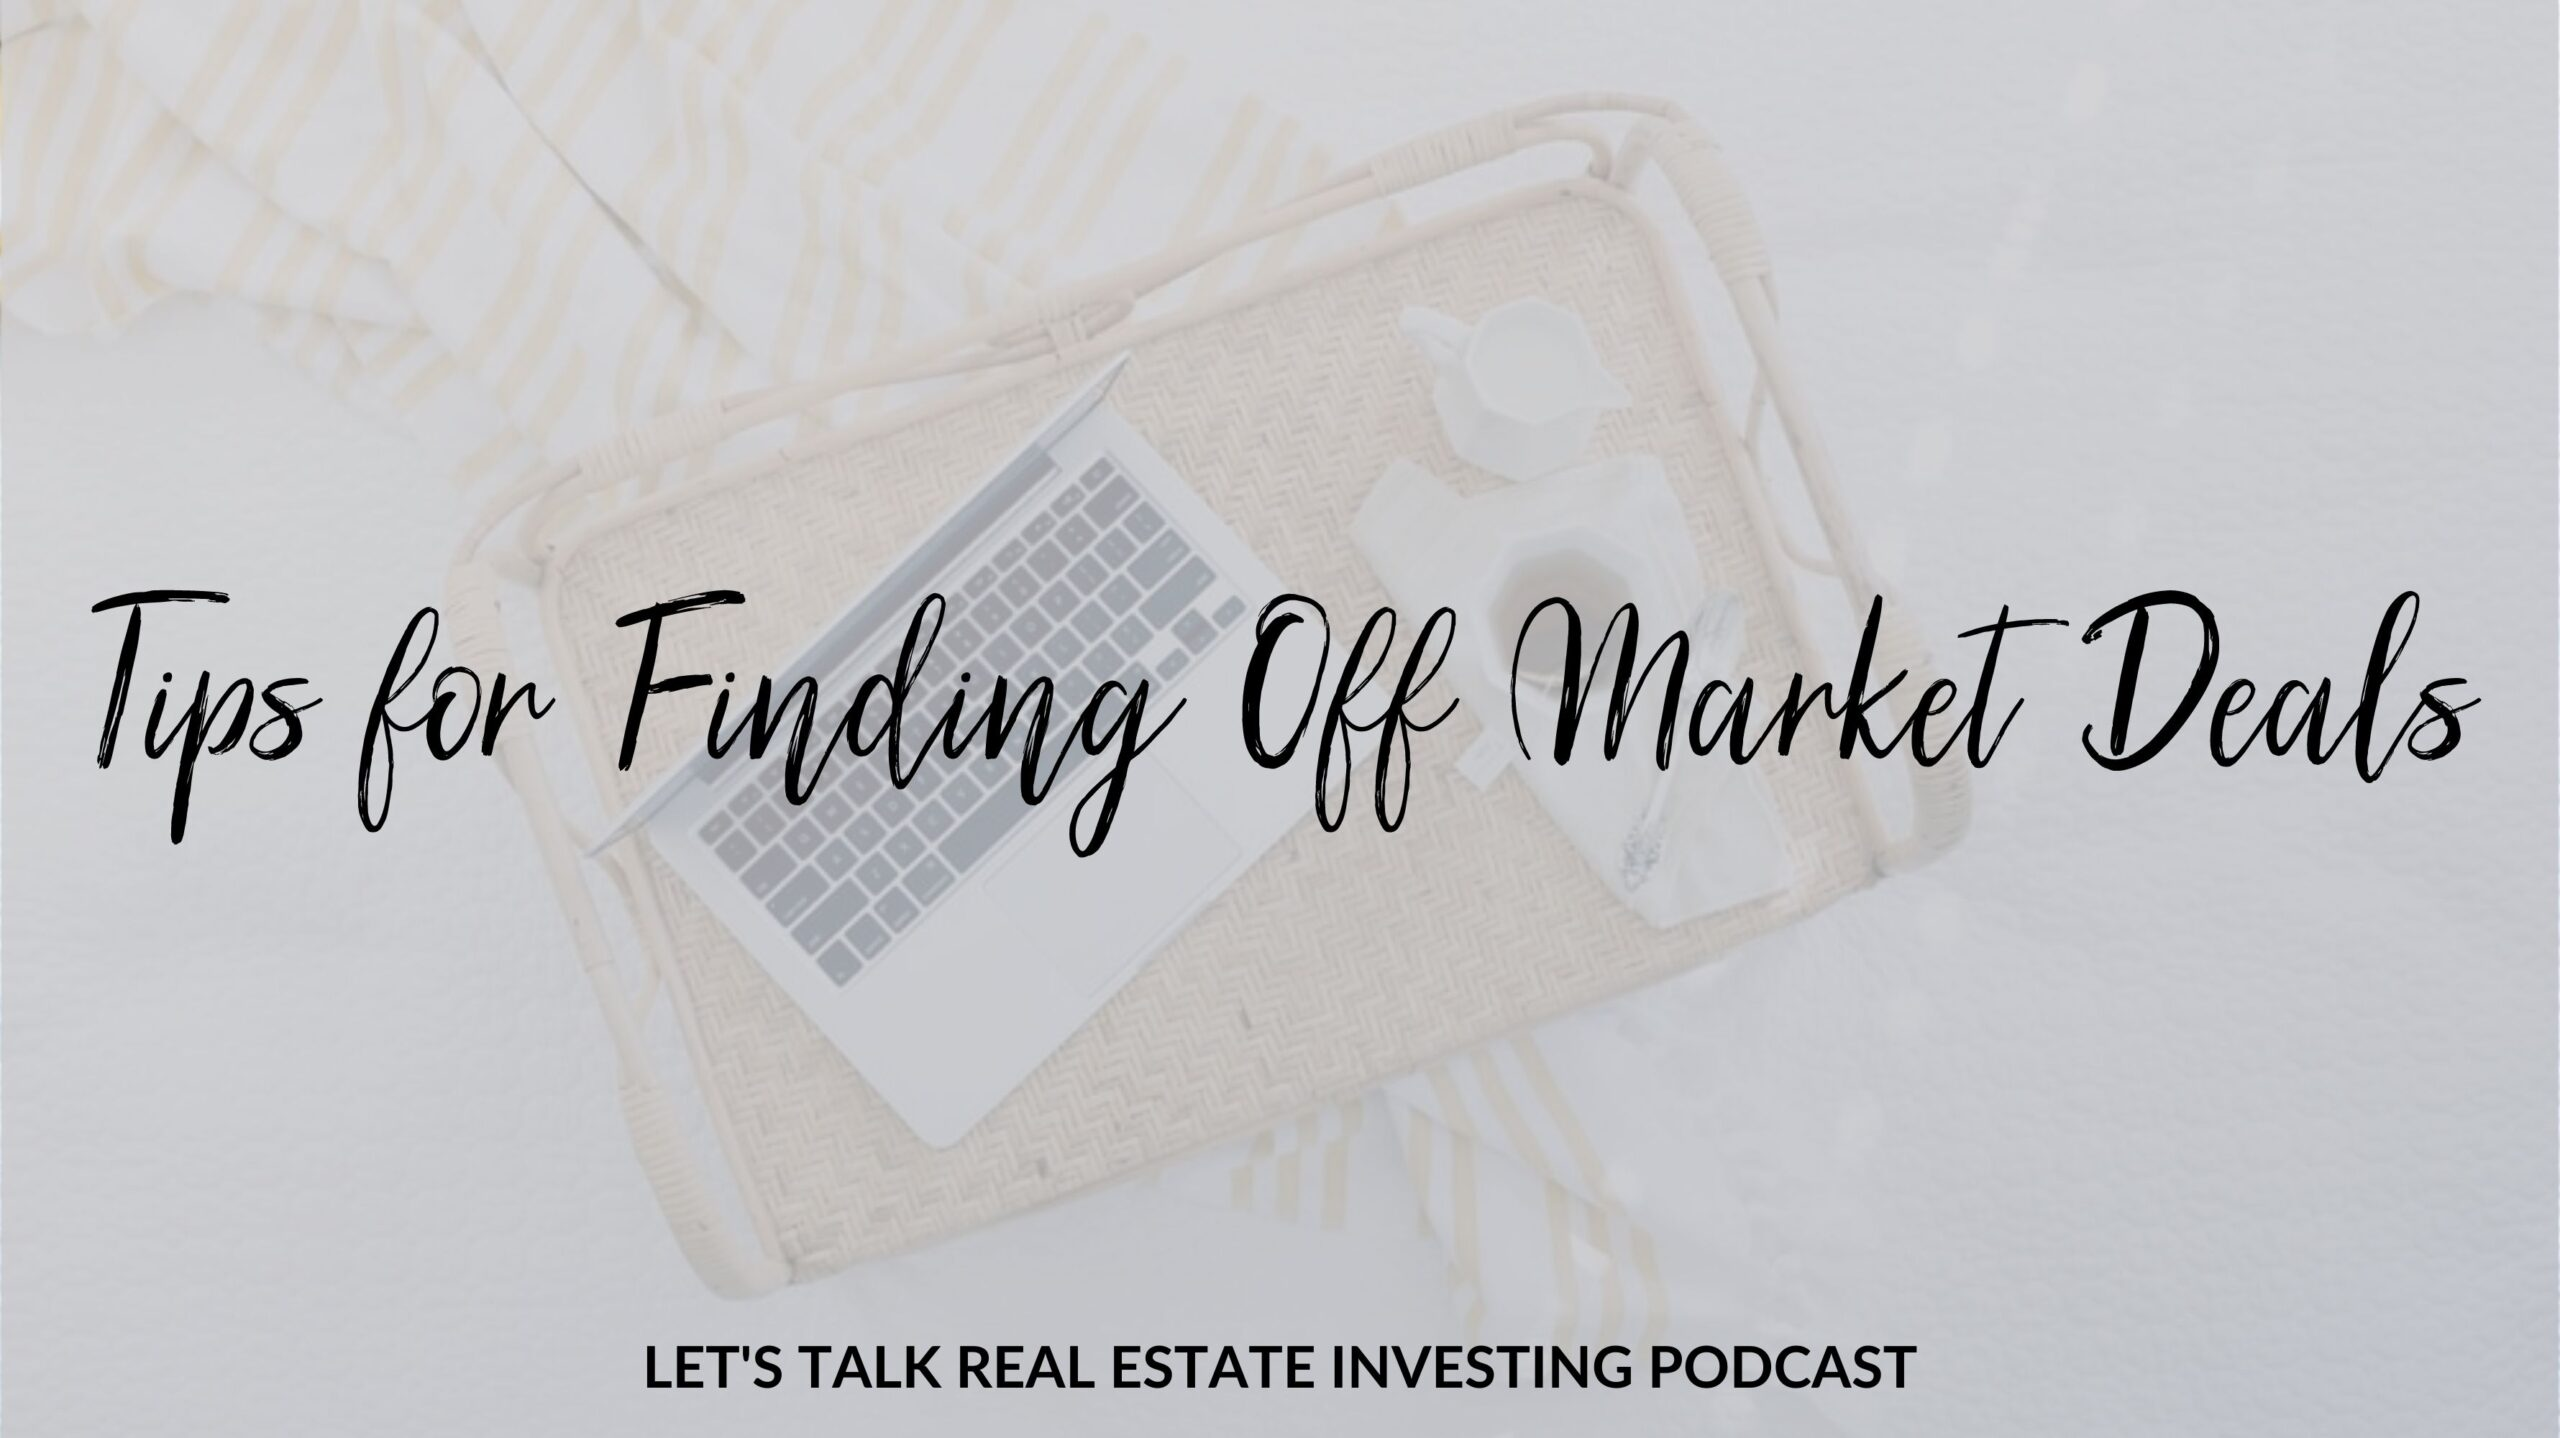 Tips for Finding Off Market Deals